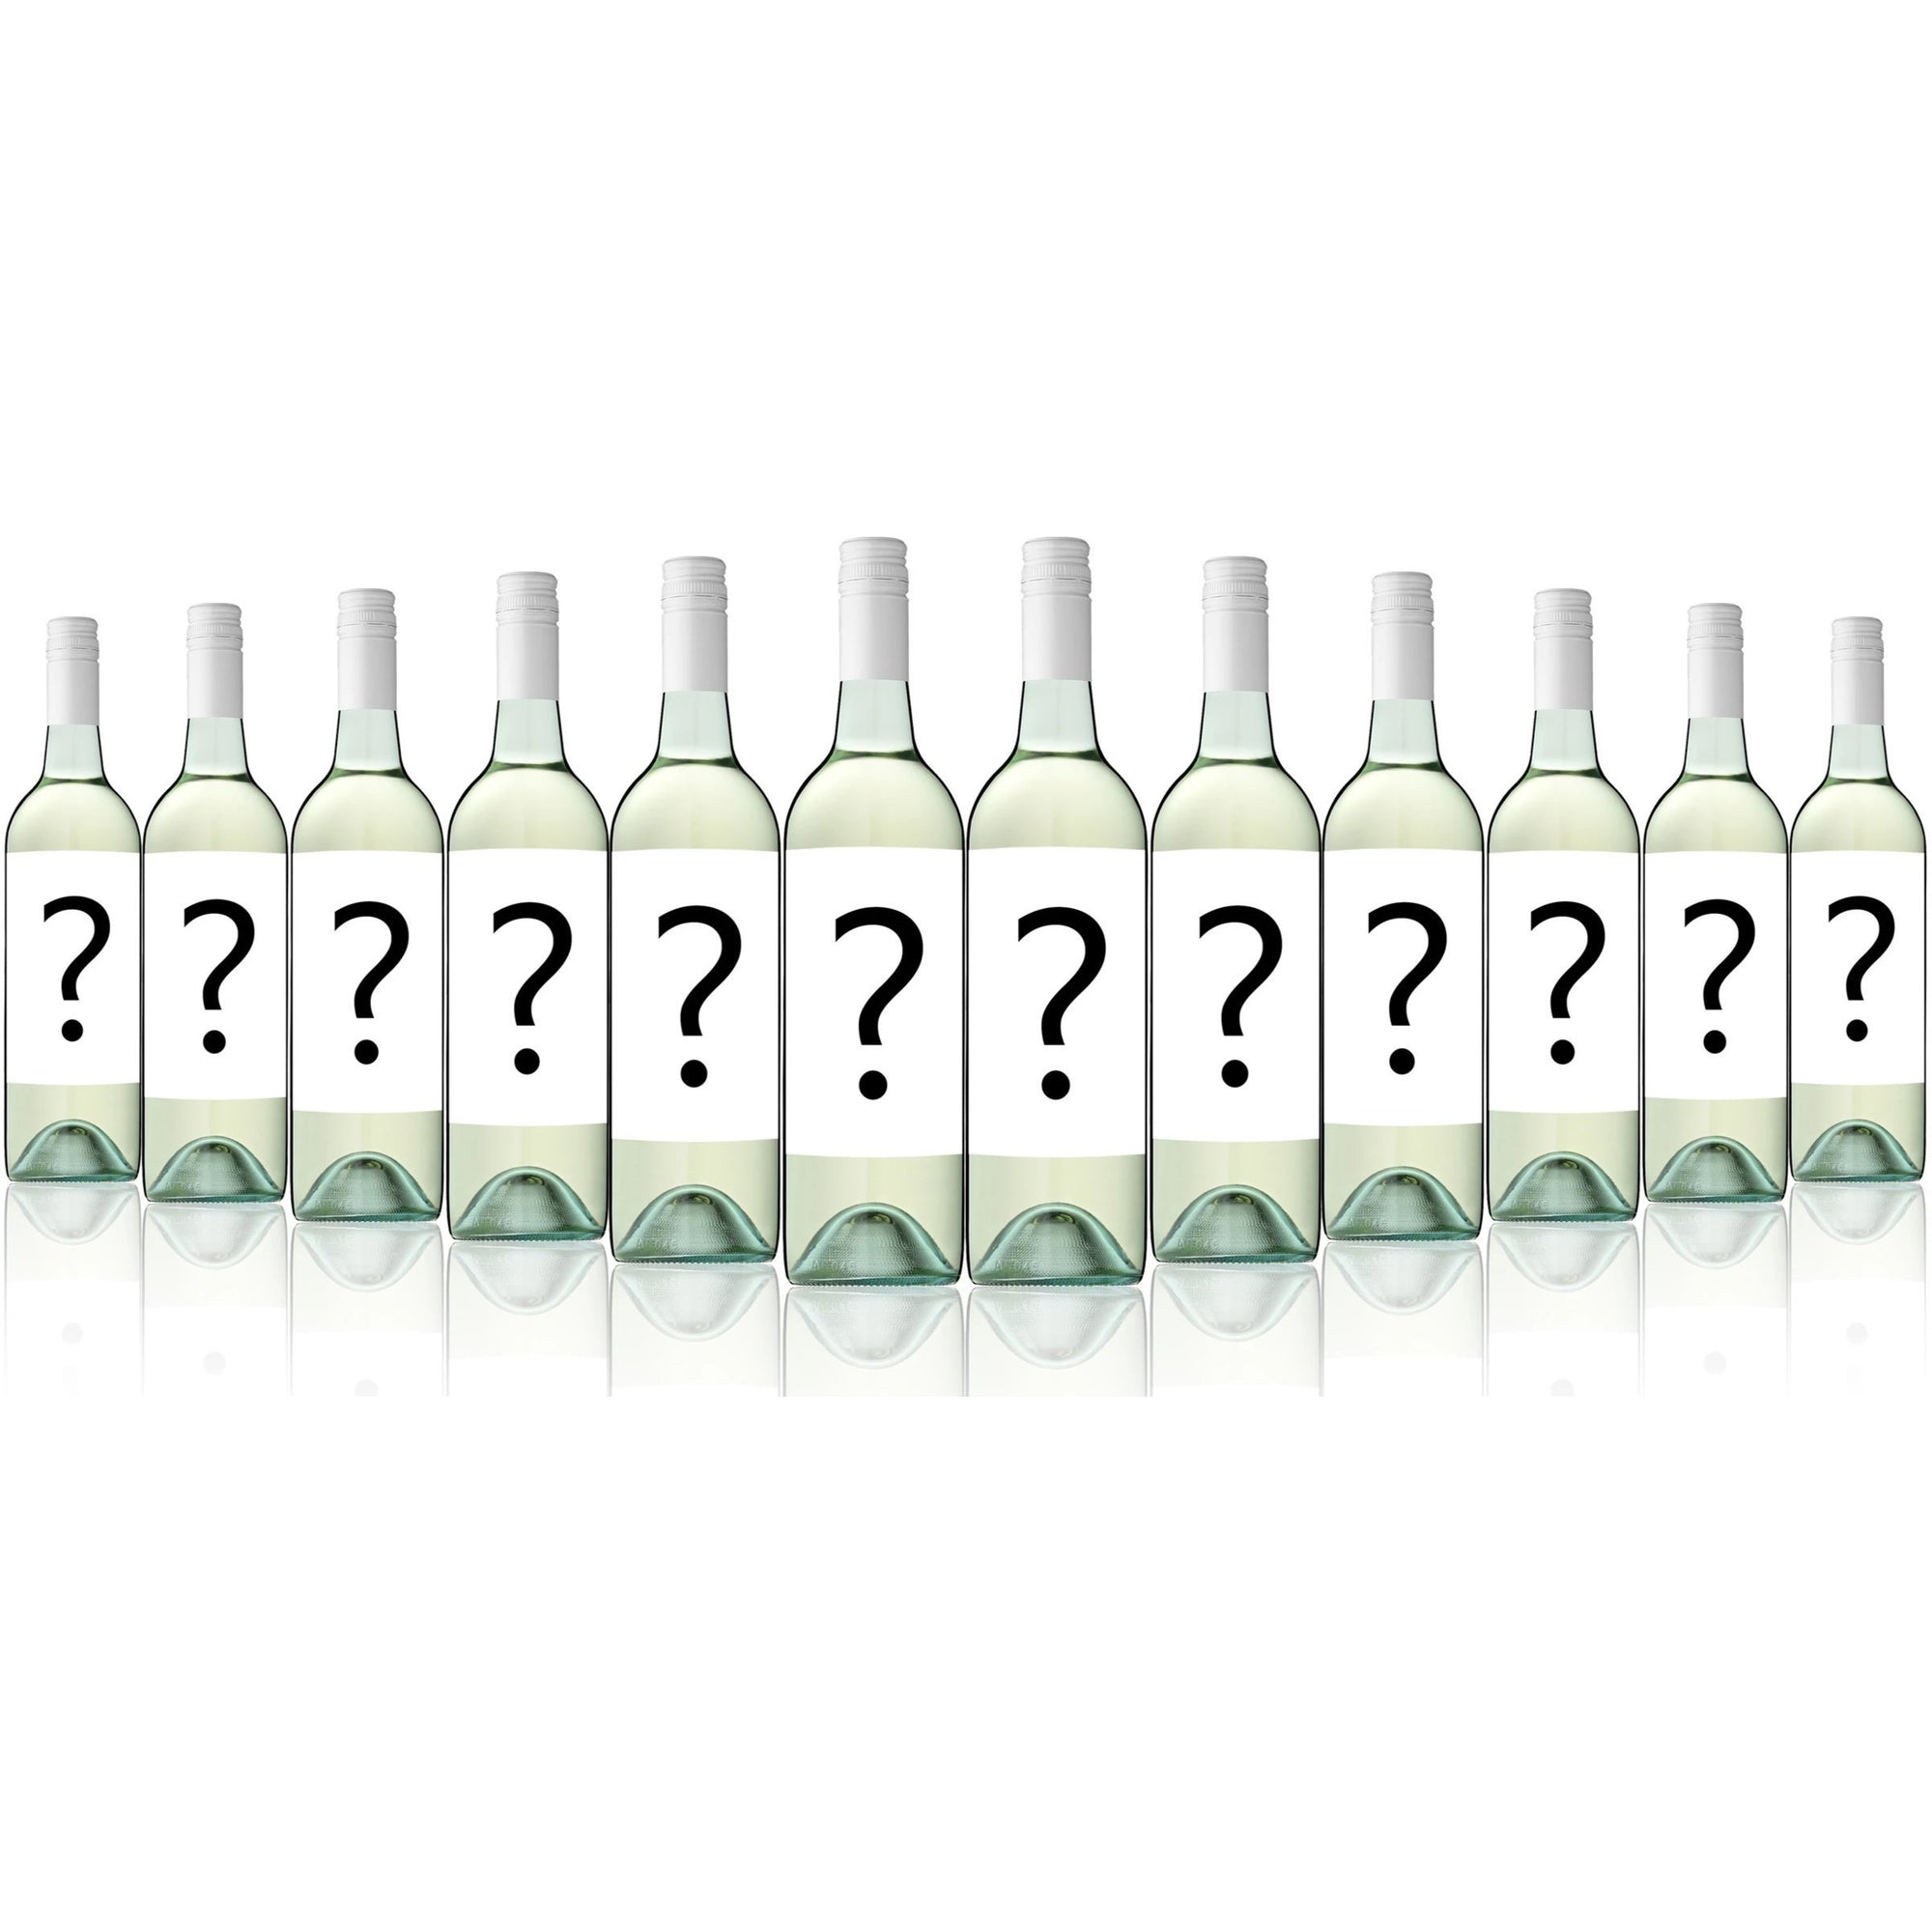 Mystery Big Brand Export Label Crisp Dry White 2017 (12 Bottles)